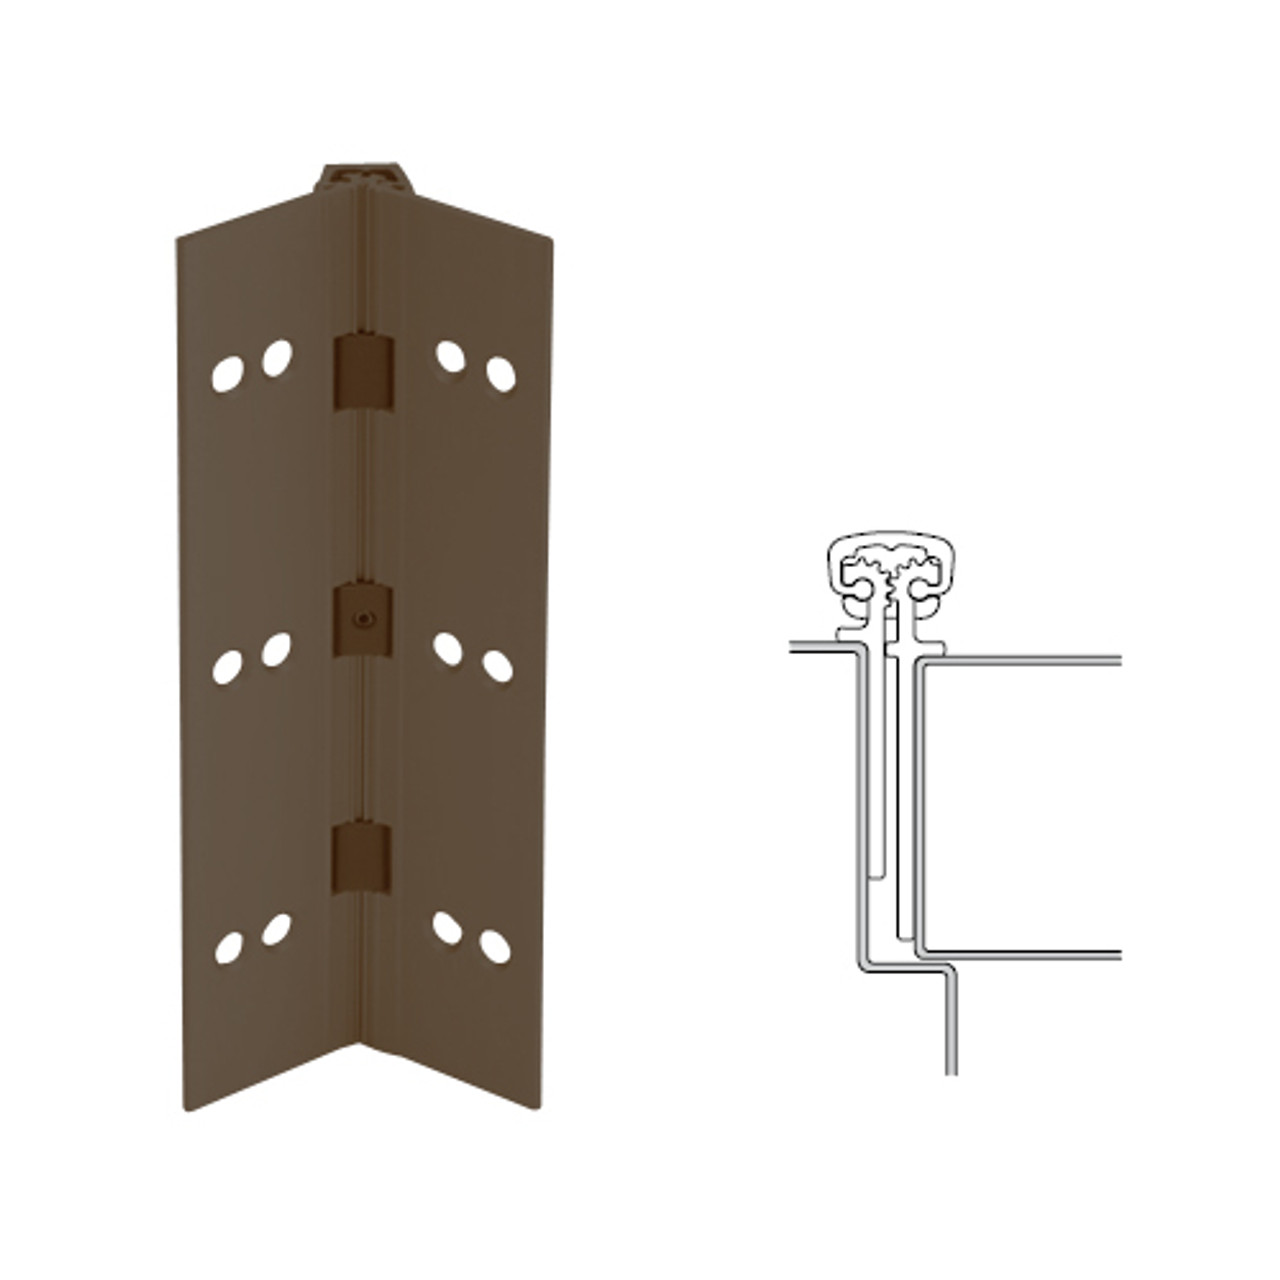 026XY-313AN-120-TF IVES Full Mortise Continuous Geared Hinges with Thread Forming Screws in Dark Bronze Anodized